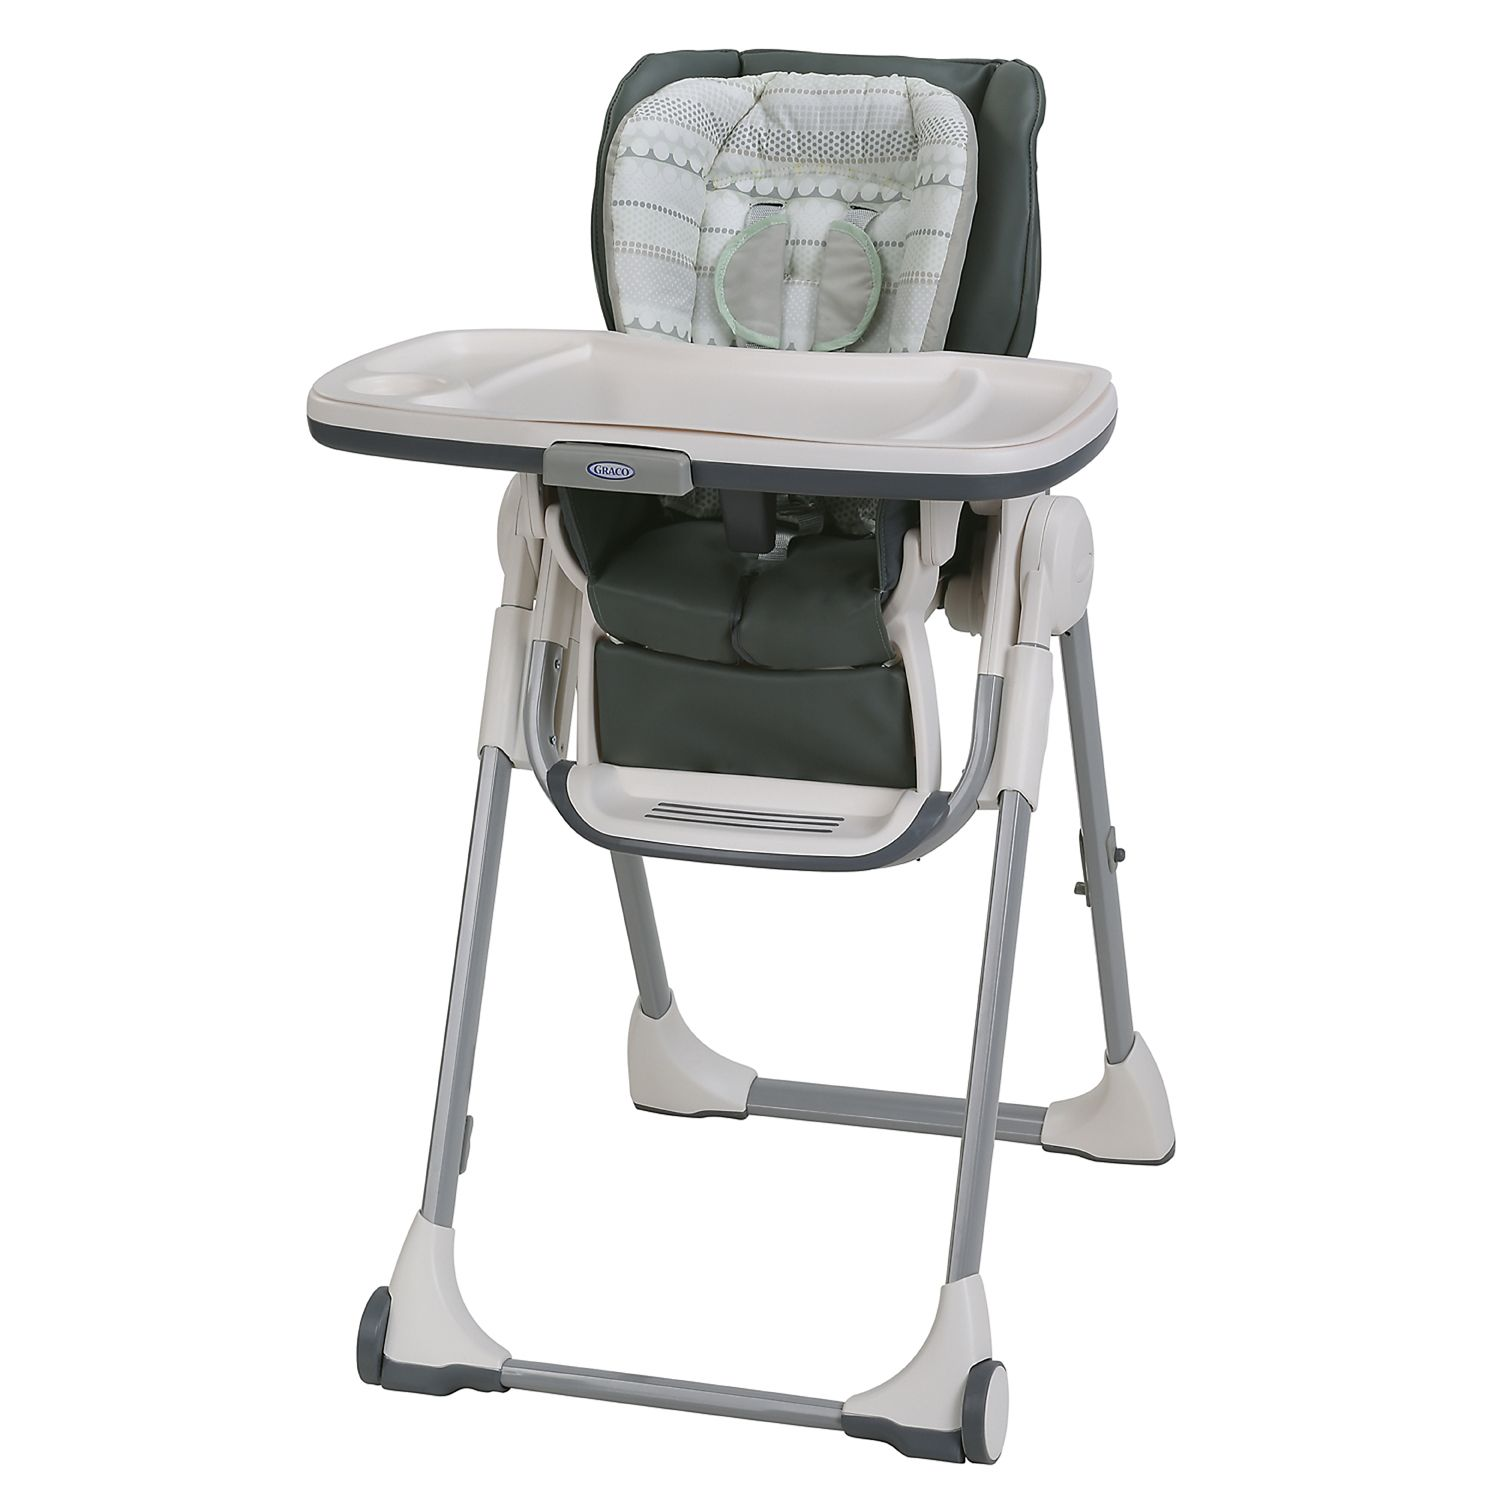 Graco Folding High Chair Graco Folding High Chair With Graco